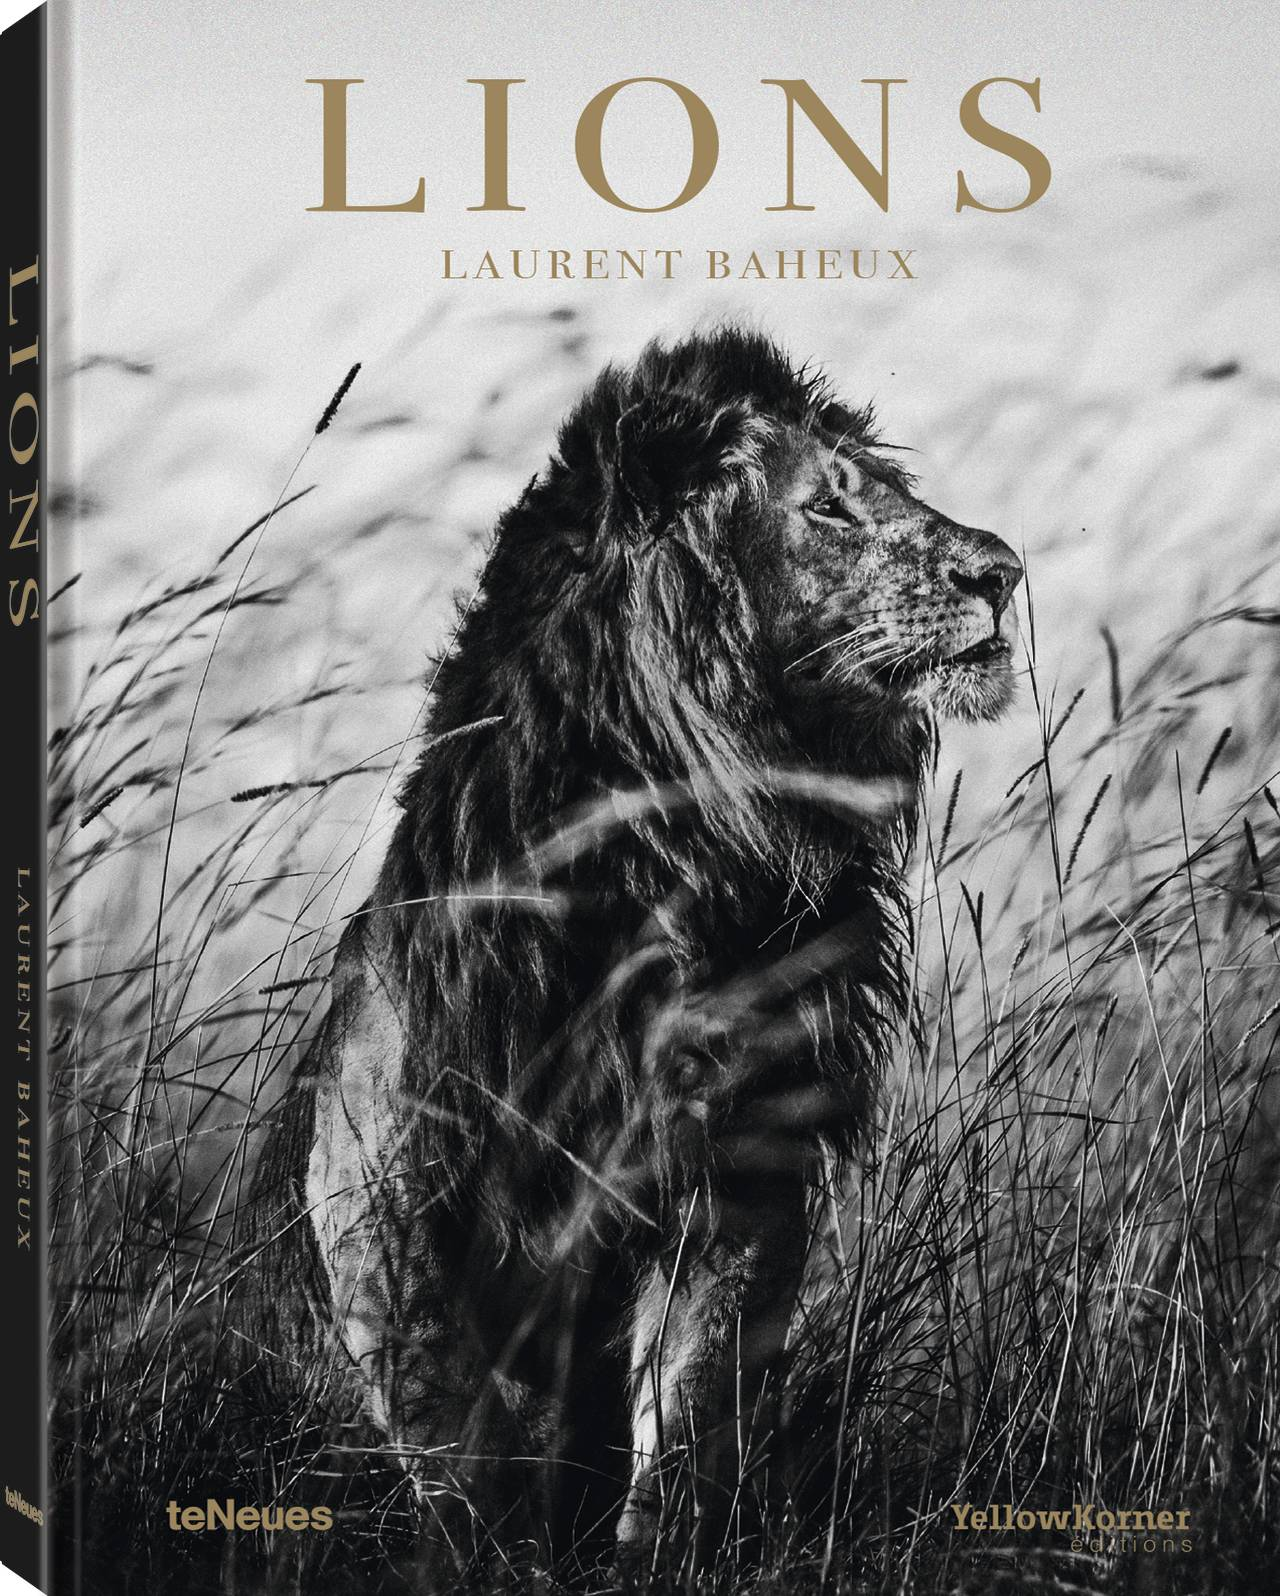 © Lions by Laurent Baheux, published by teNeues, www.teneues.com, Lion in the grass I, Kenya 2013, Photo © 2019 Laurent Baheux. All rights reserved.